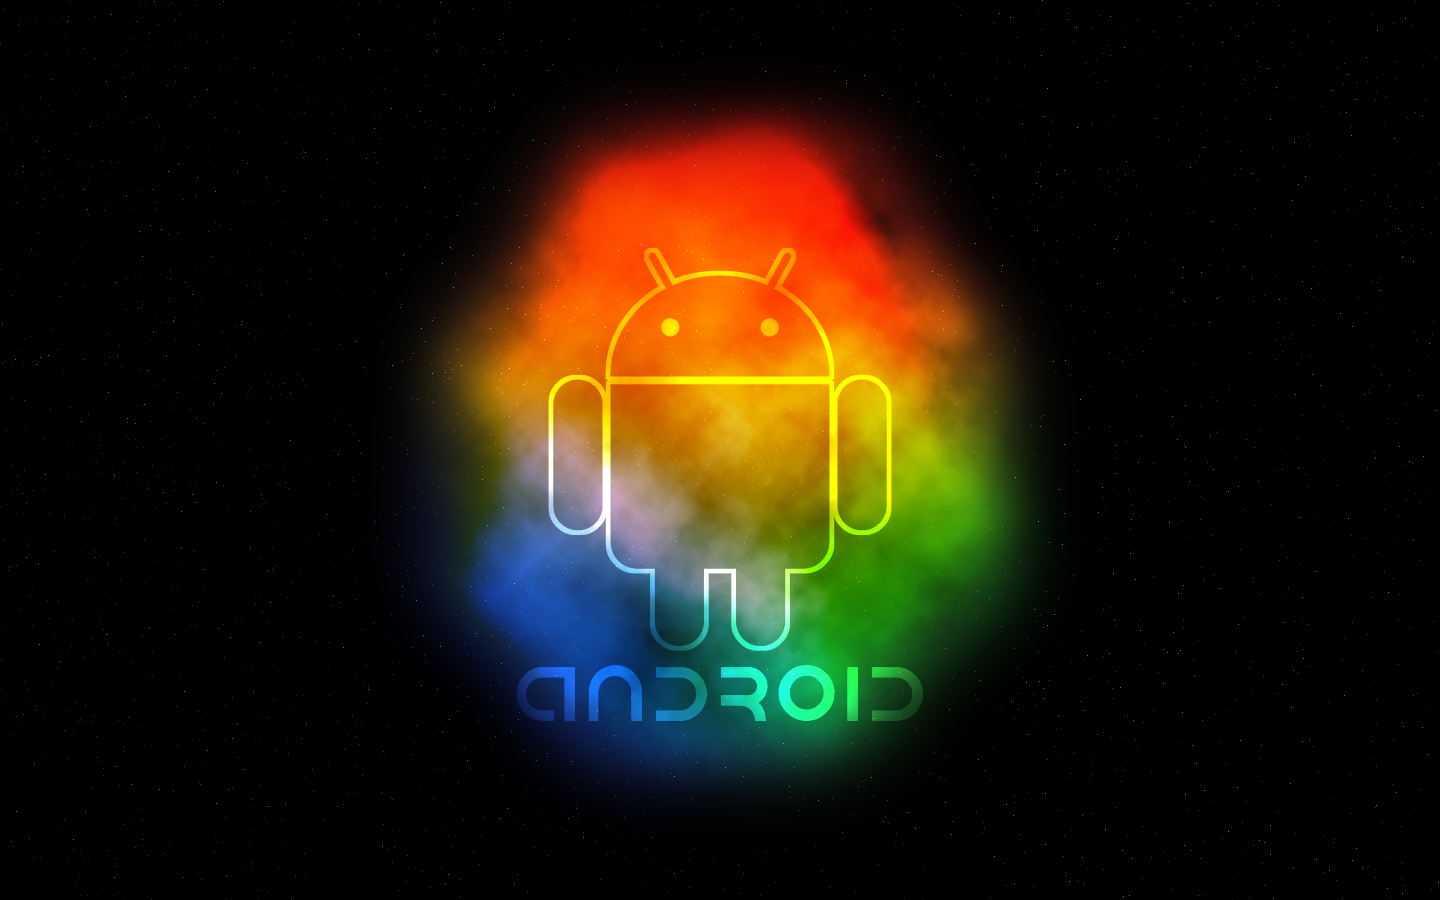 Wallpaper For Android Tablets Cool HD Wallpapers 1440x900